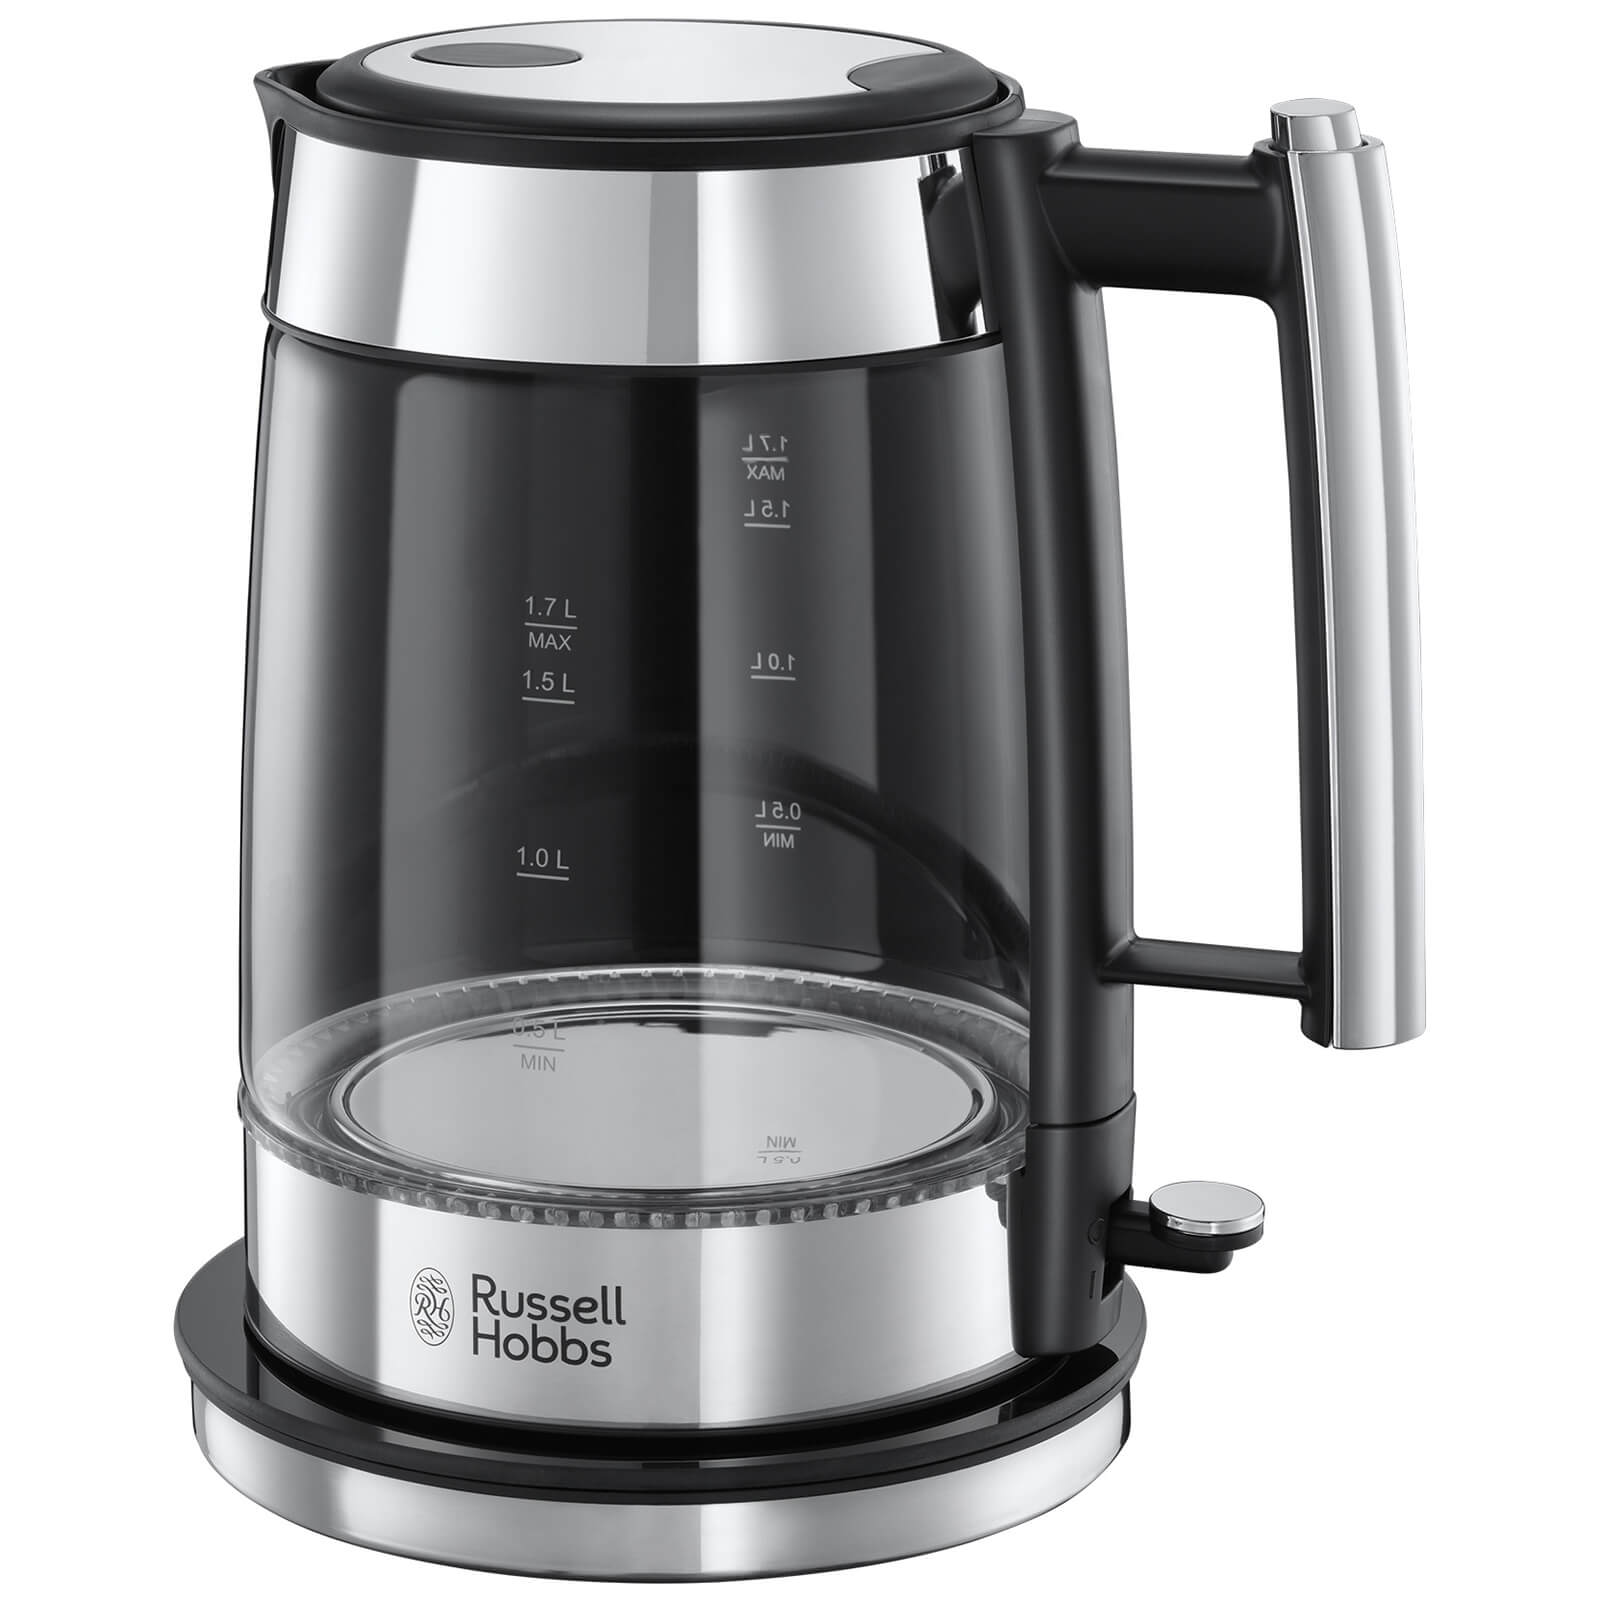 Russell Hobbs 23830 Elegance 1.7L Kettle - Polished Stainless Steel